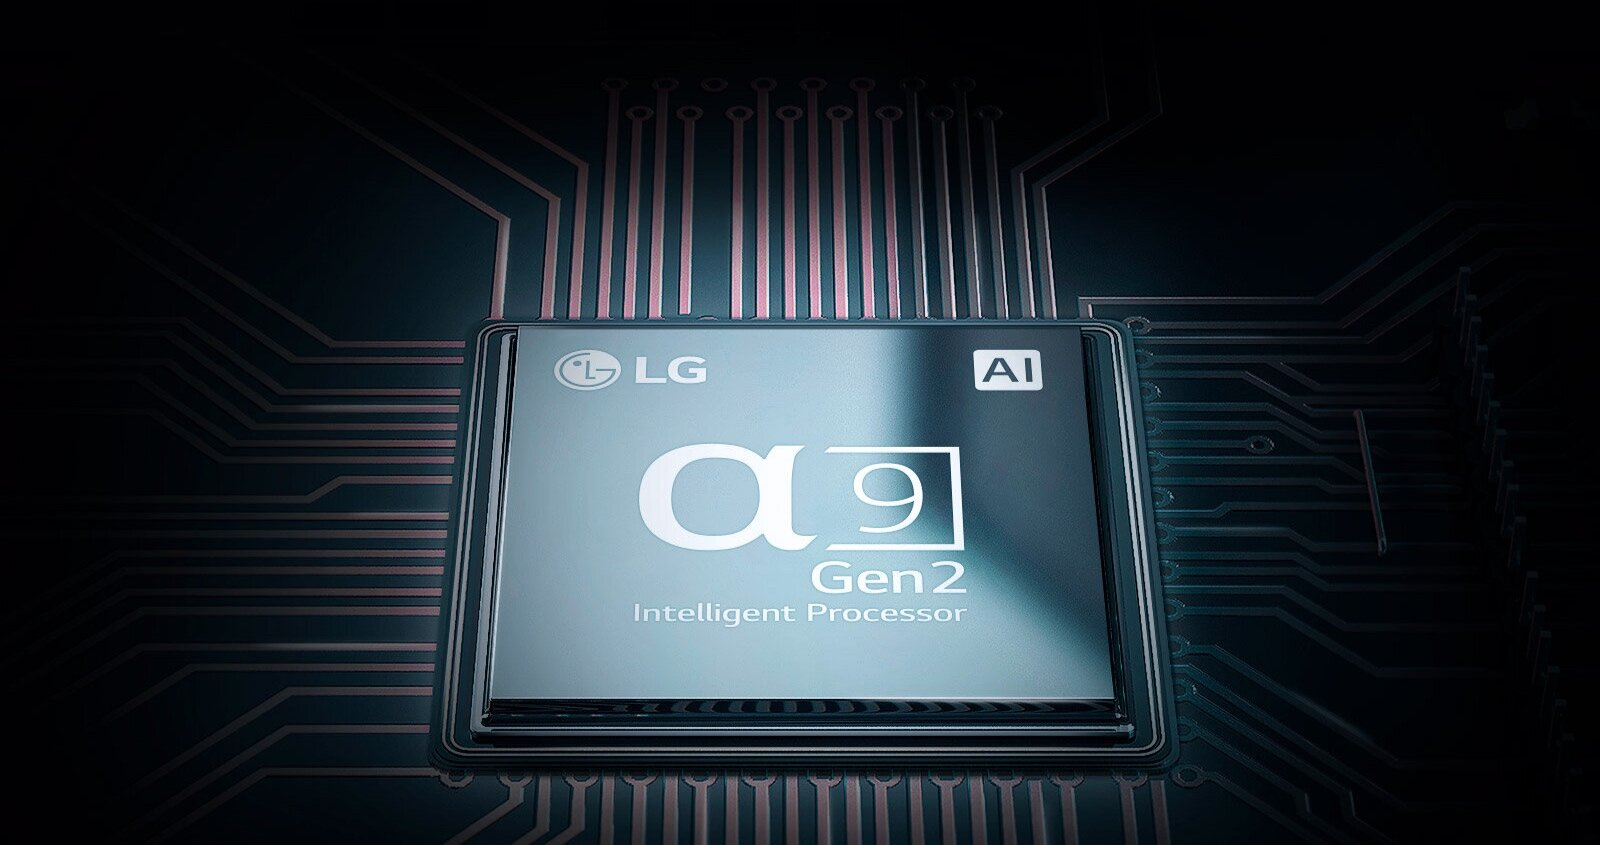 New 2nd Gen α9 Processor with AI - The 2nd generation α9 Processor has been upgraded with a deep learning AI algorithm, which optimises picture and sound depending on the type and quality of content, so you always enjoy a breathtaking experience.